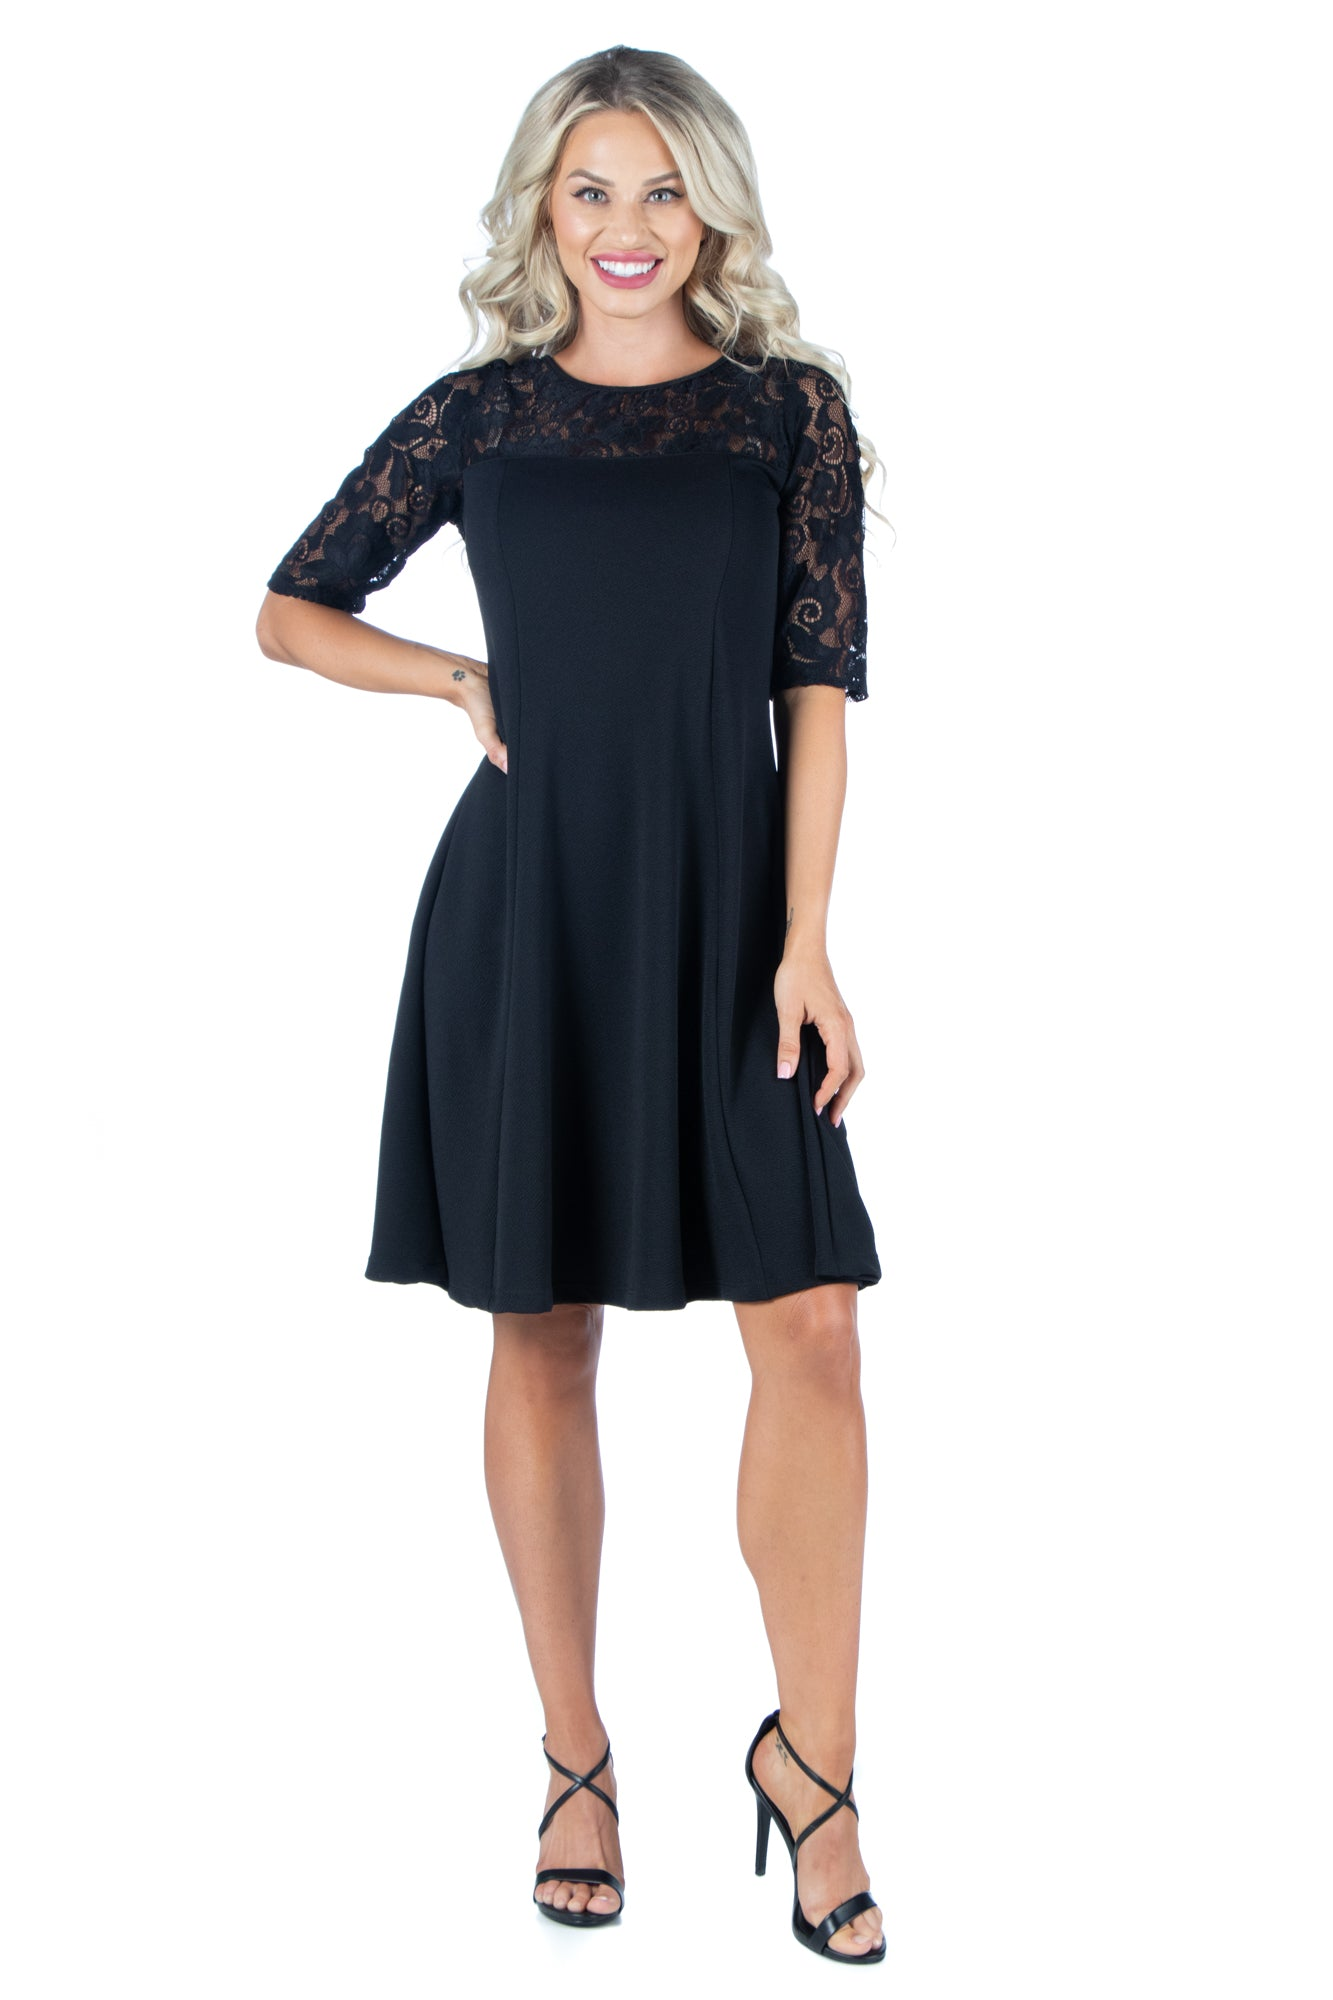 24seven Comfort Apparel Knee Length Sheer Lace Party Dress